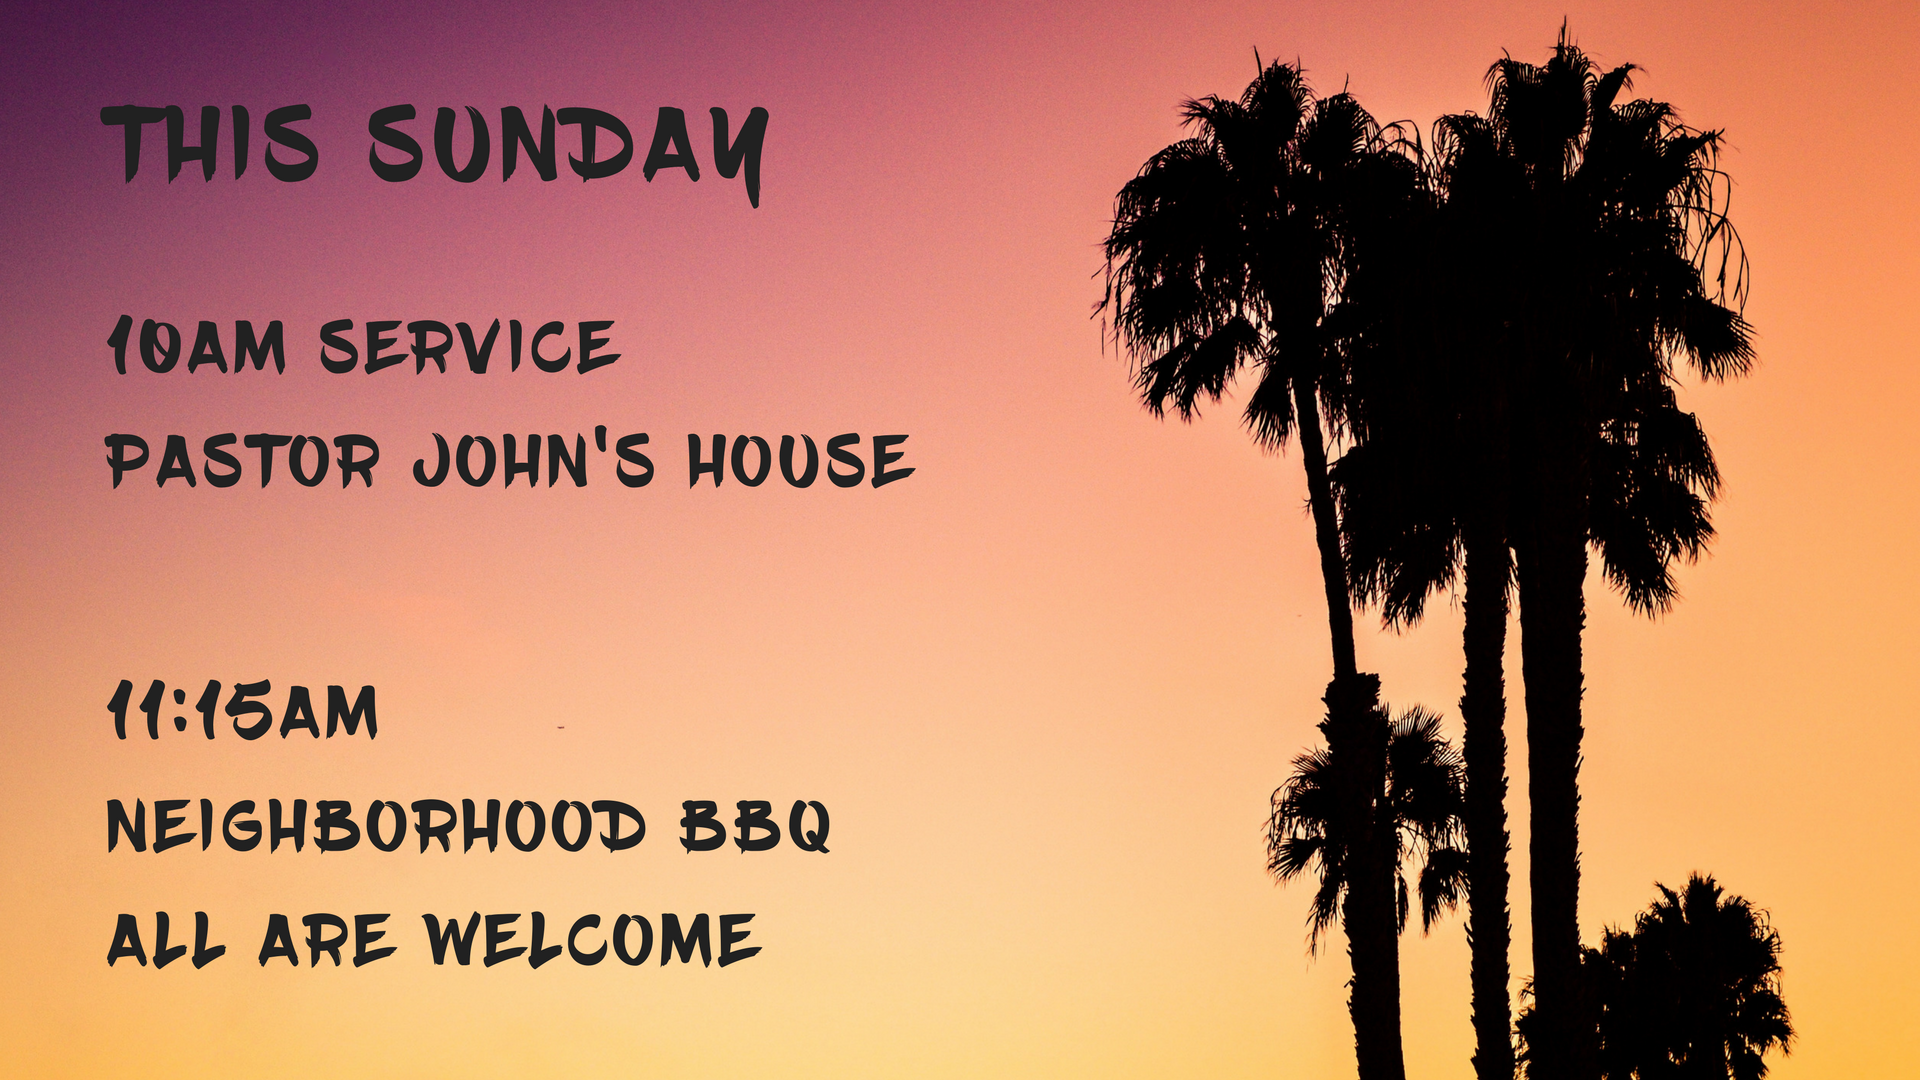 Sunday 10amService at Pastor John's House-2.png